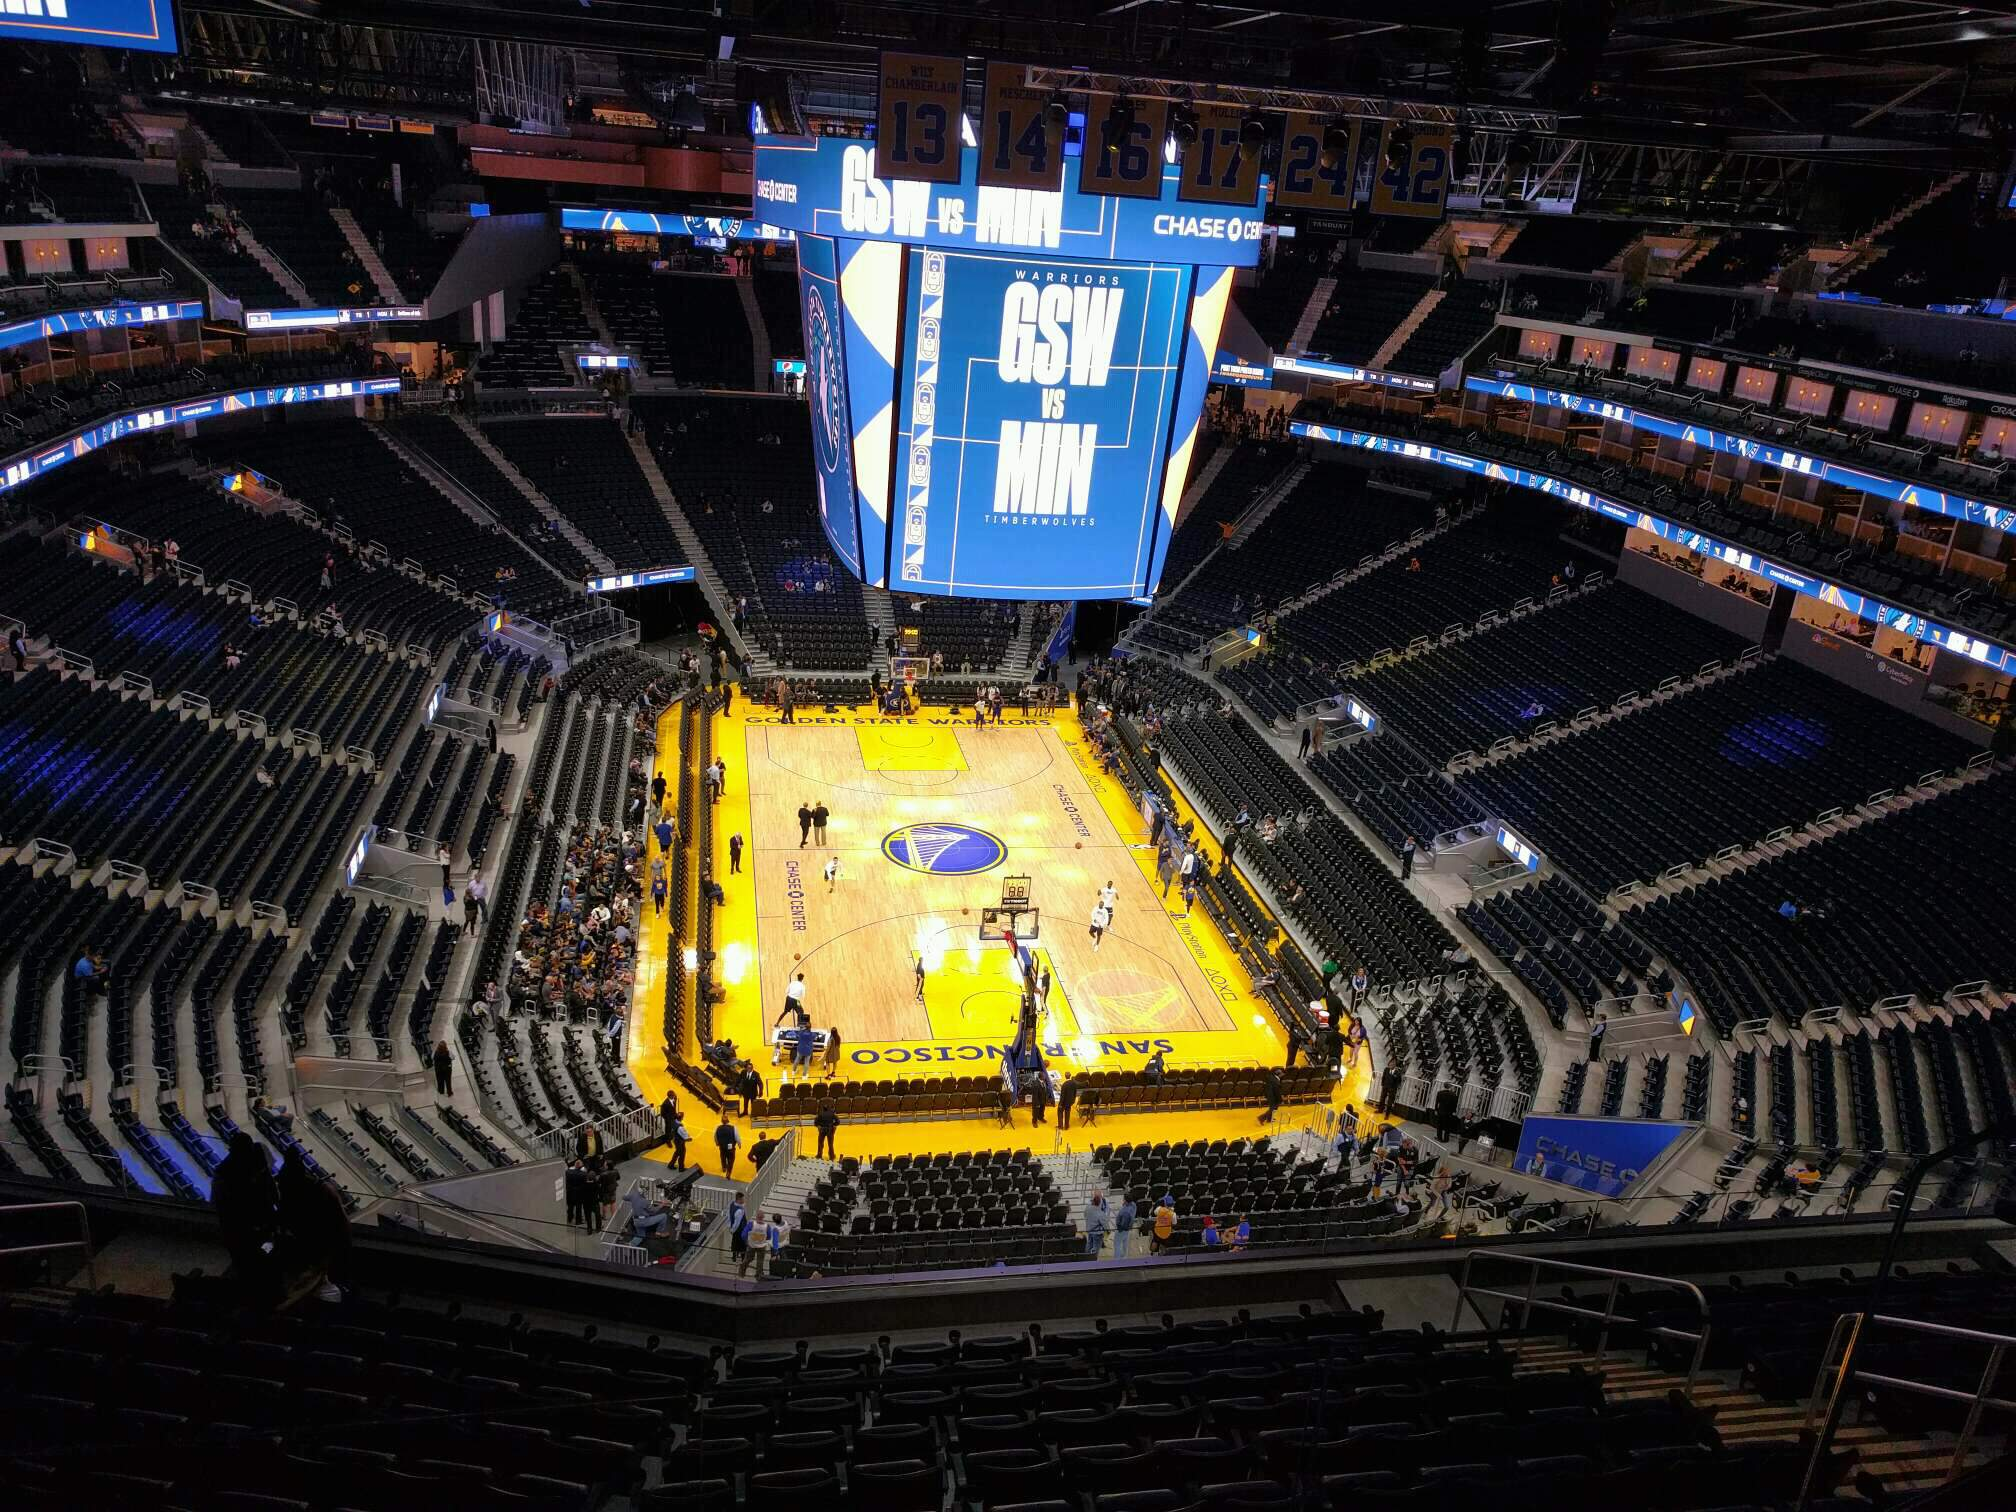 Chase Center Section 214 Row 12 Seat 6